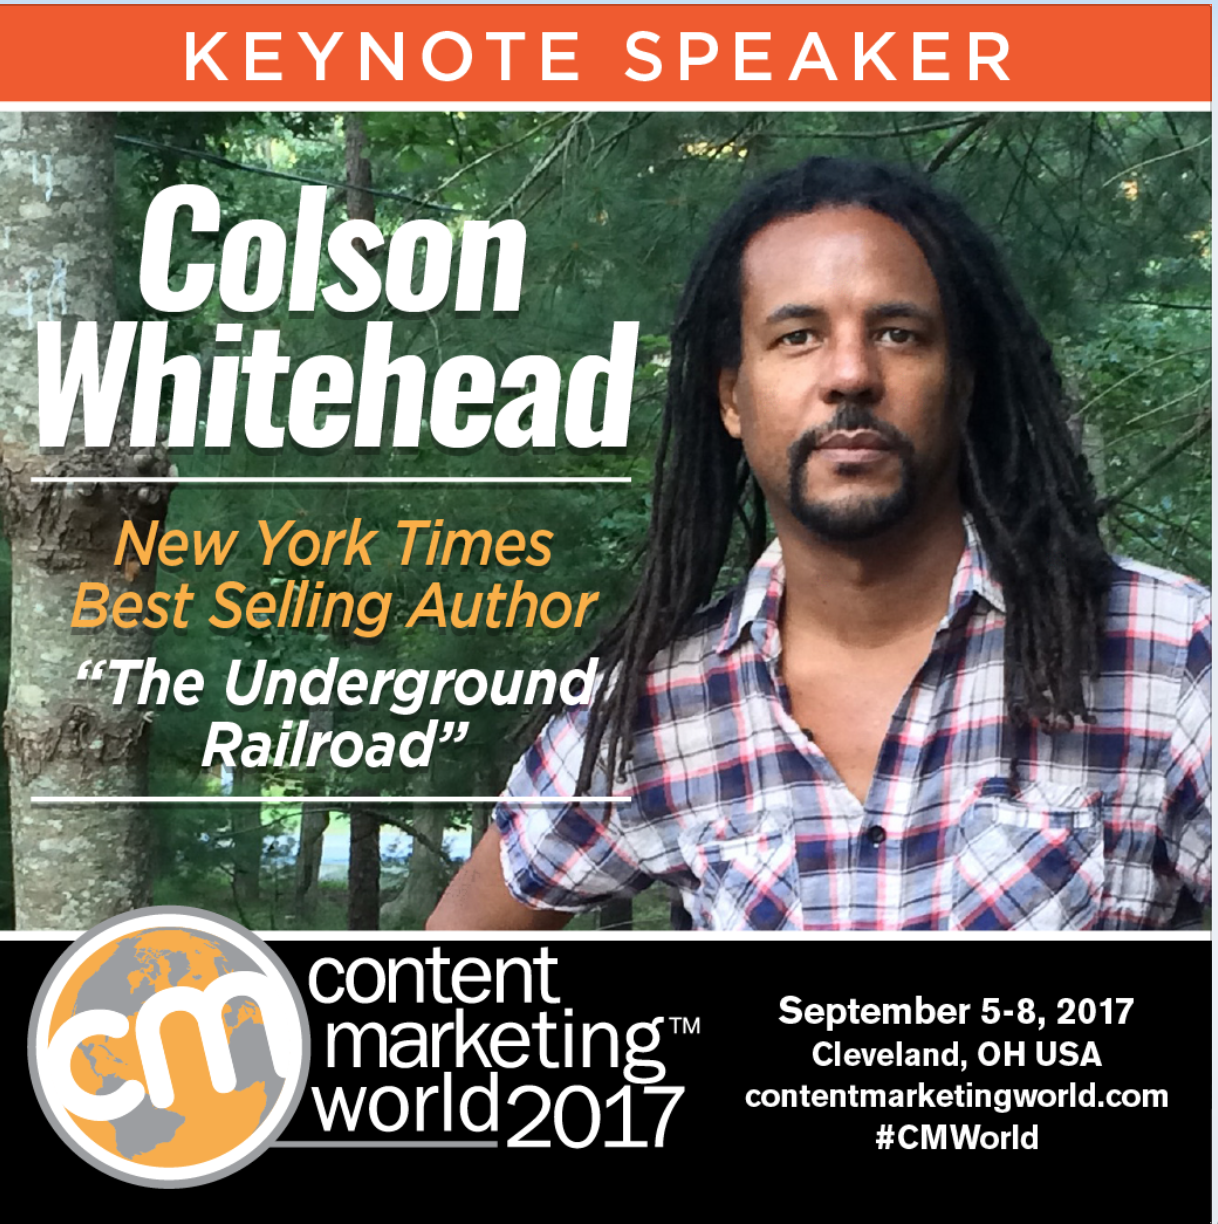 Bestselling author of The Underground Railroad kicks off CMWorld's Thursday main event